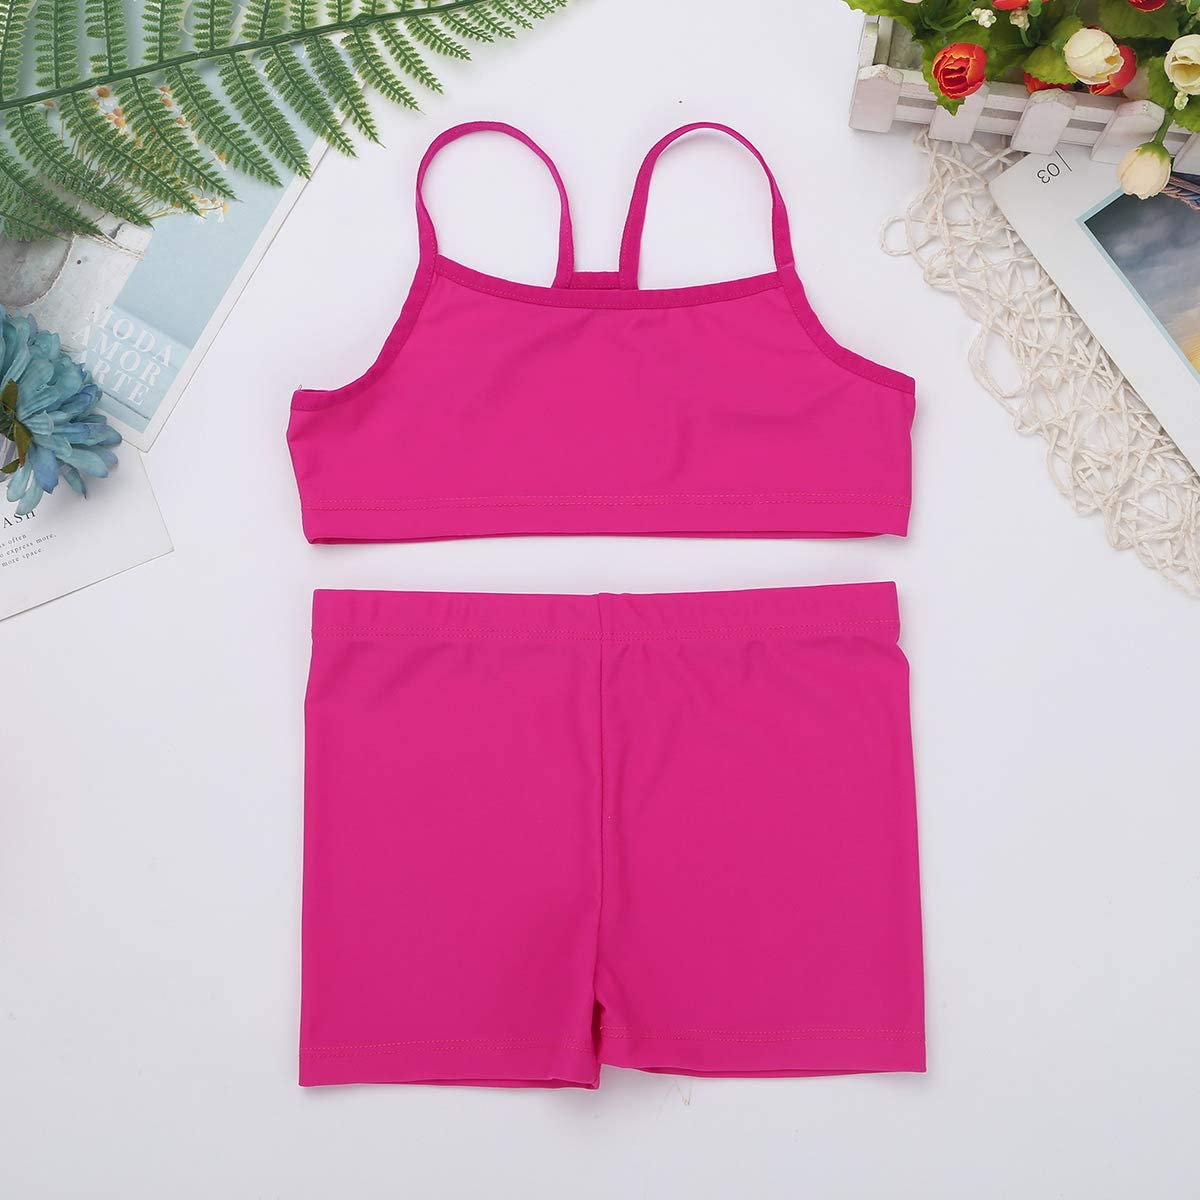 FEESHOW Girls 2 Piece Gymnastic Dance Sports Bra Crop Top with Shorts Outfit Set for Athletic Leotard Dancing Swimming